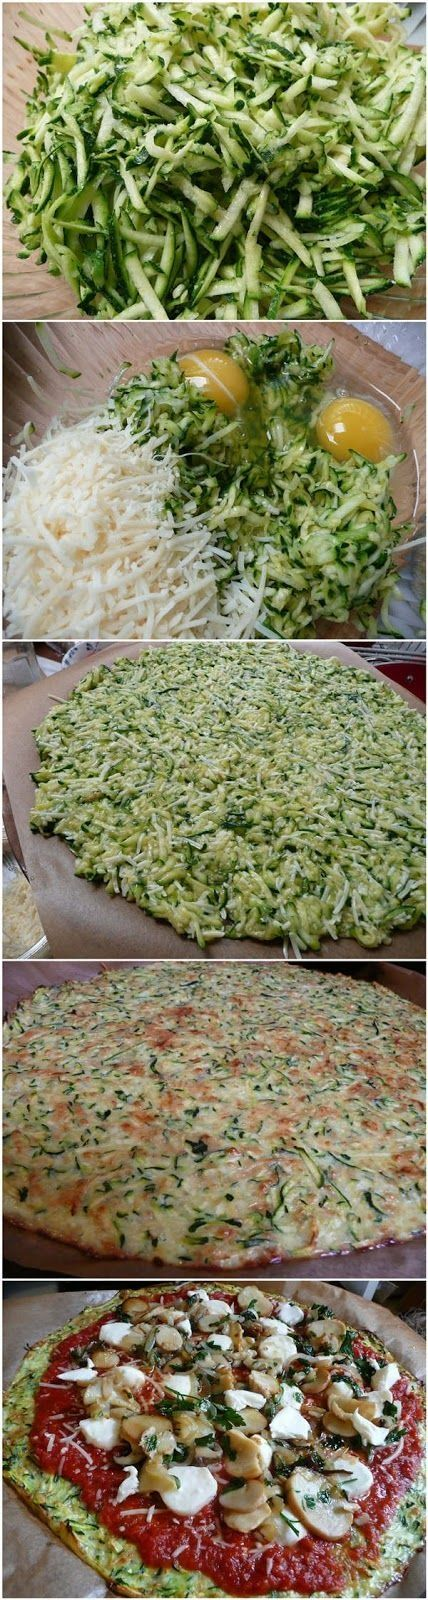 Zucchini cheese healthy pizza